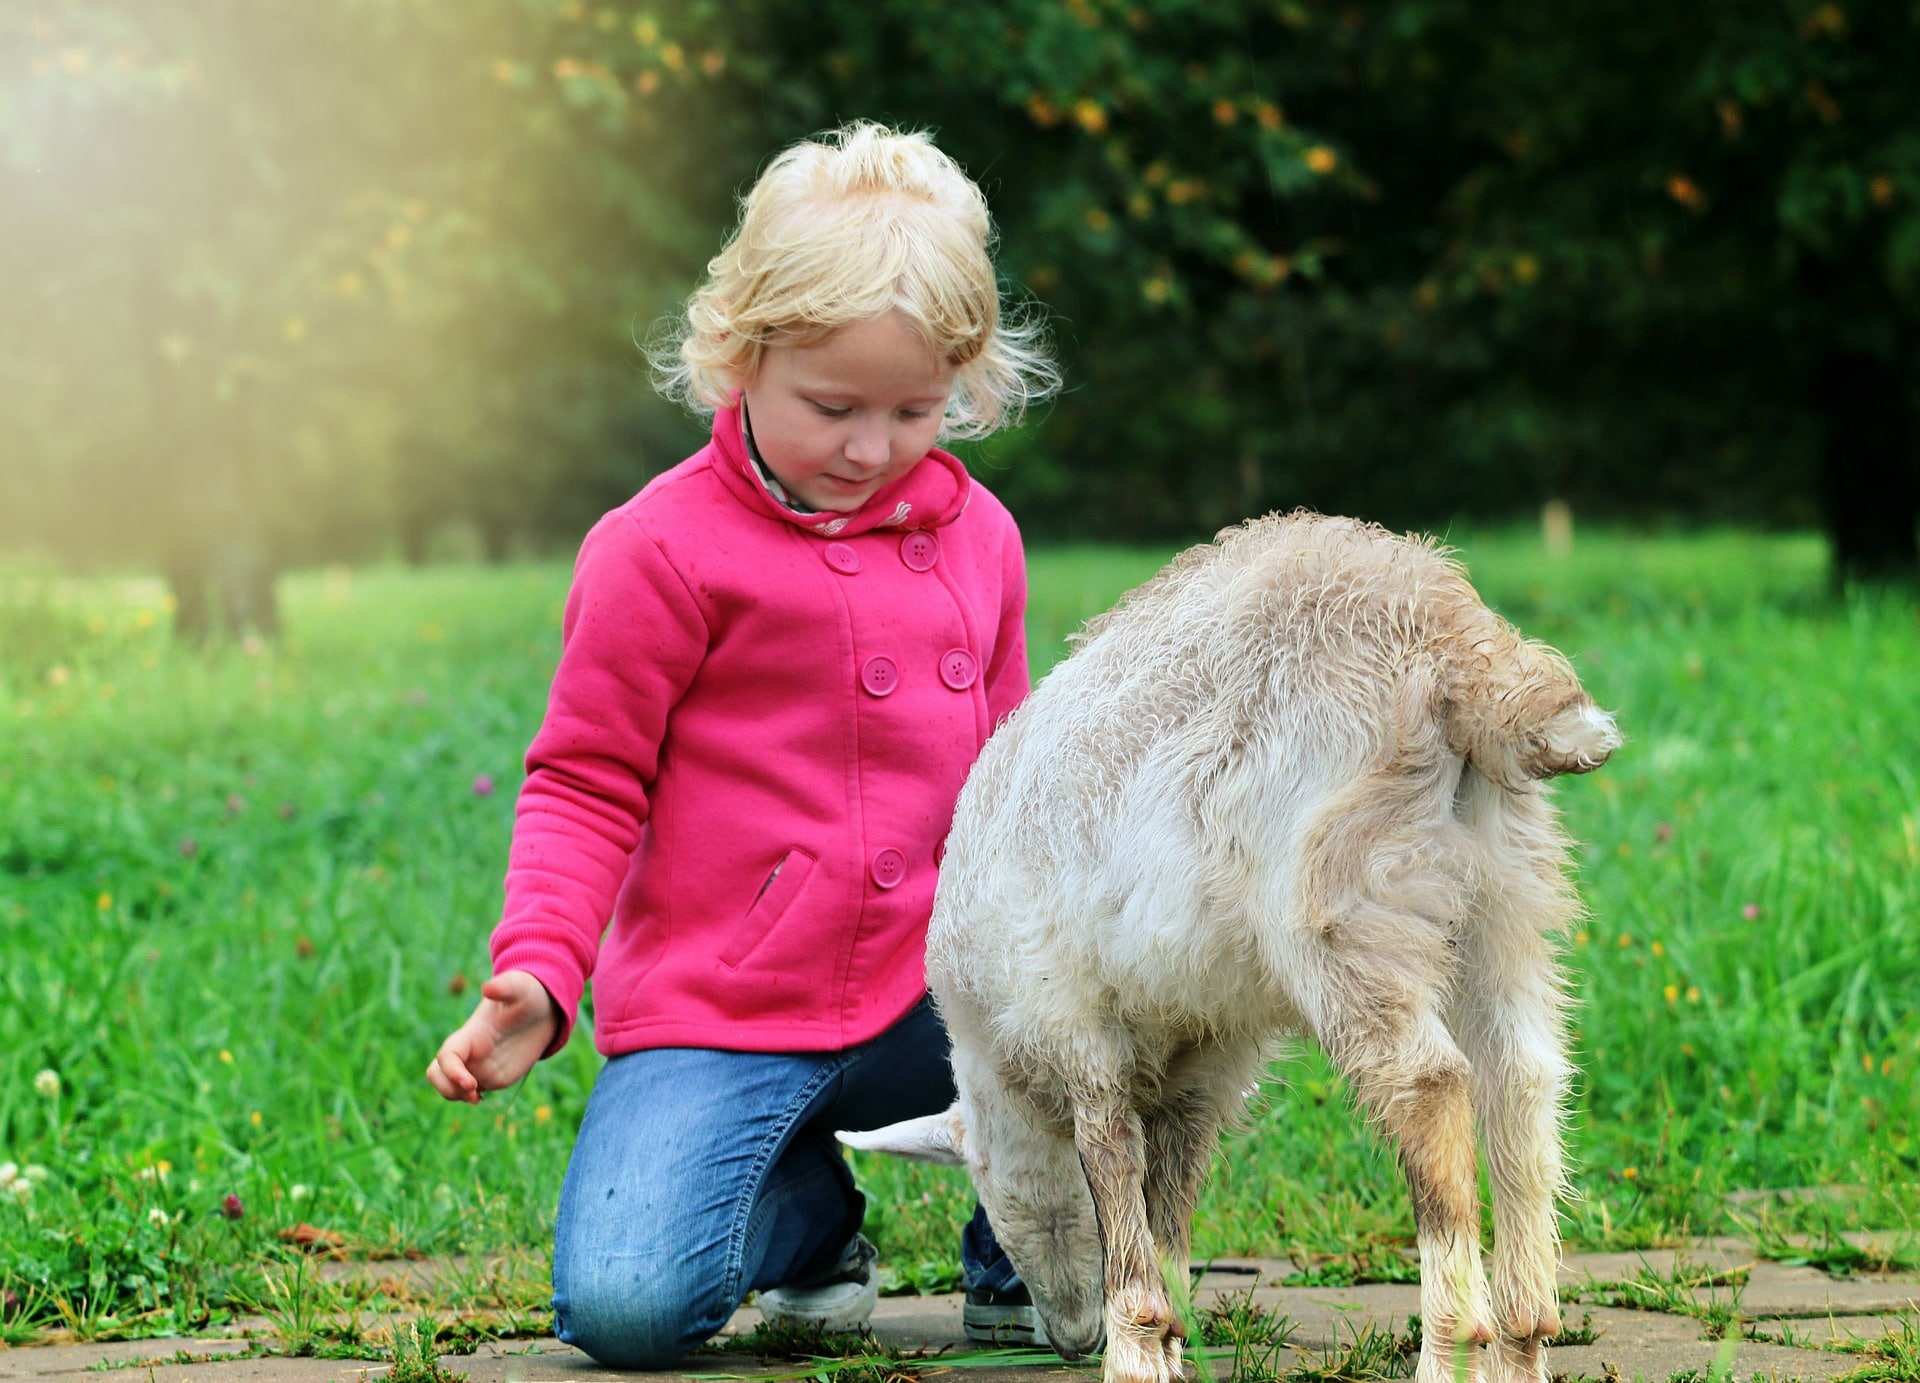 Parenting tips on how to teach kindness to kids